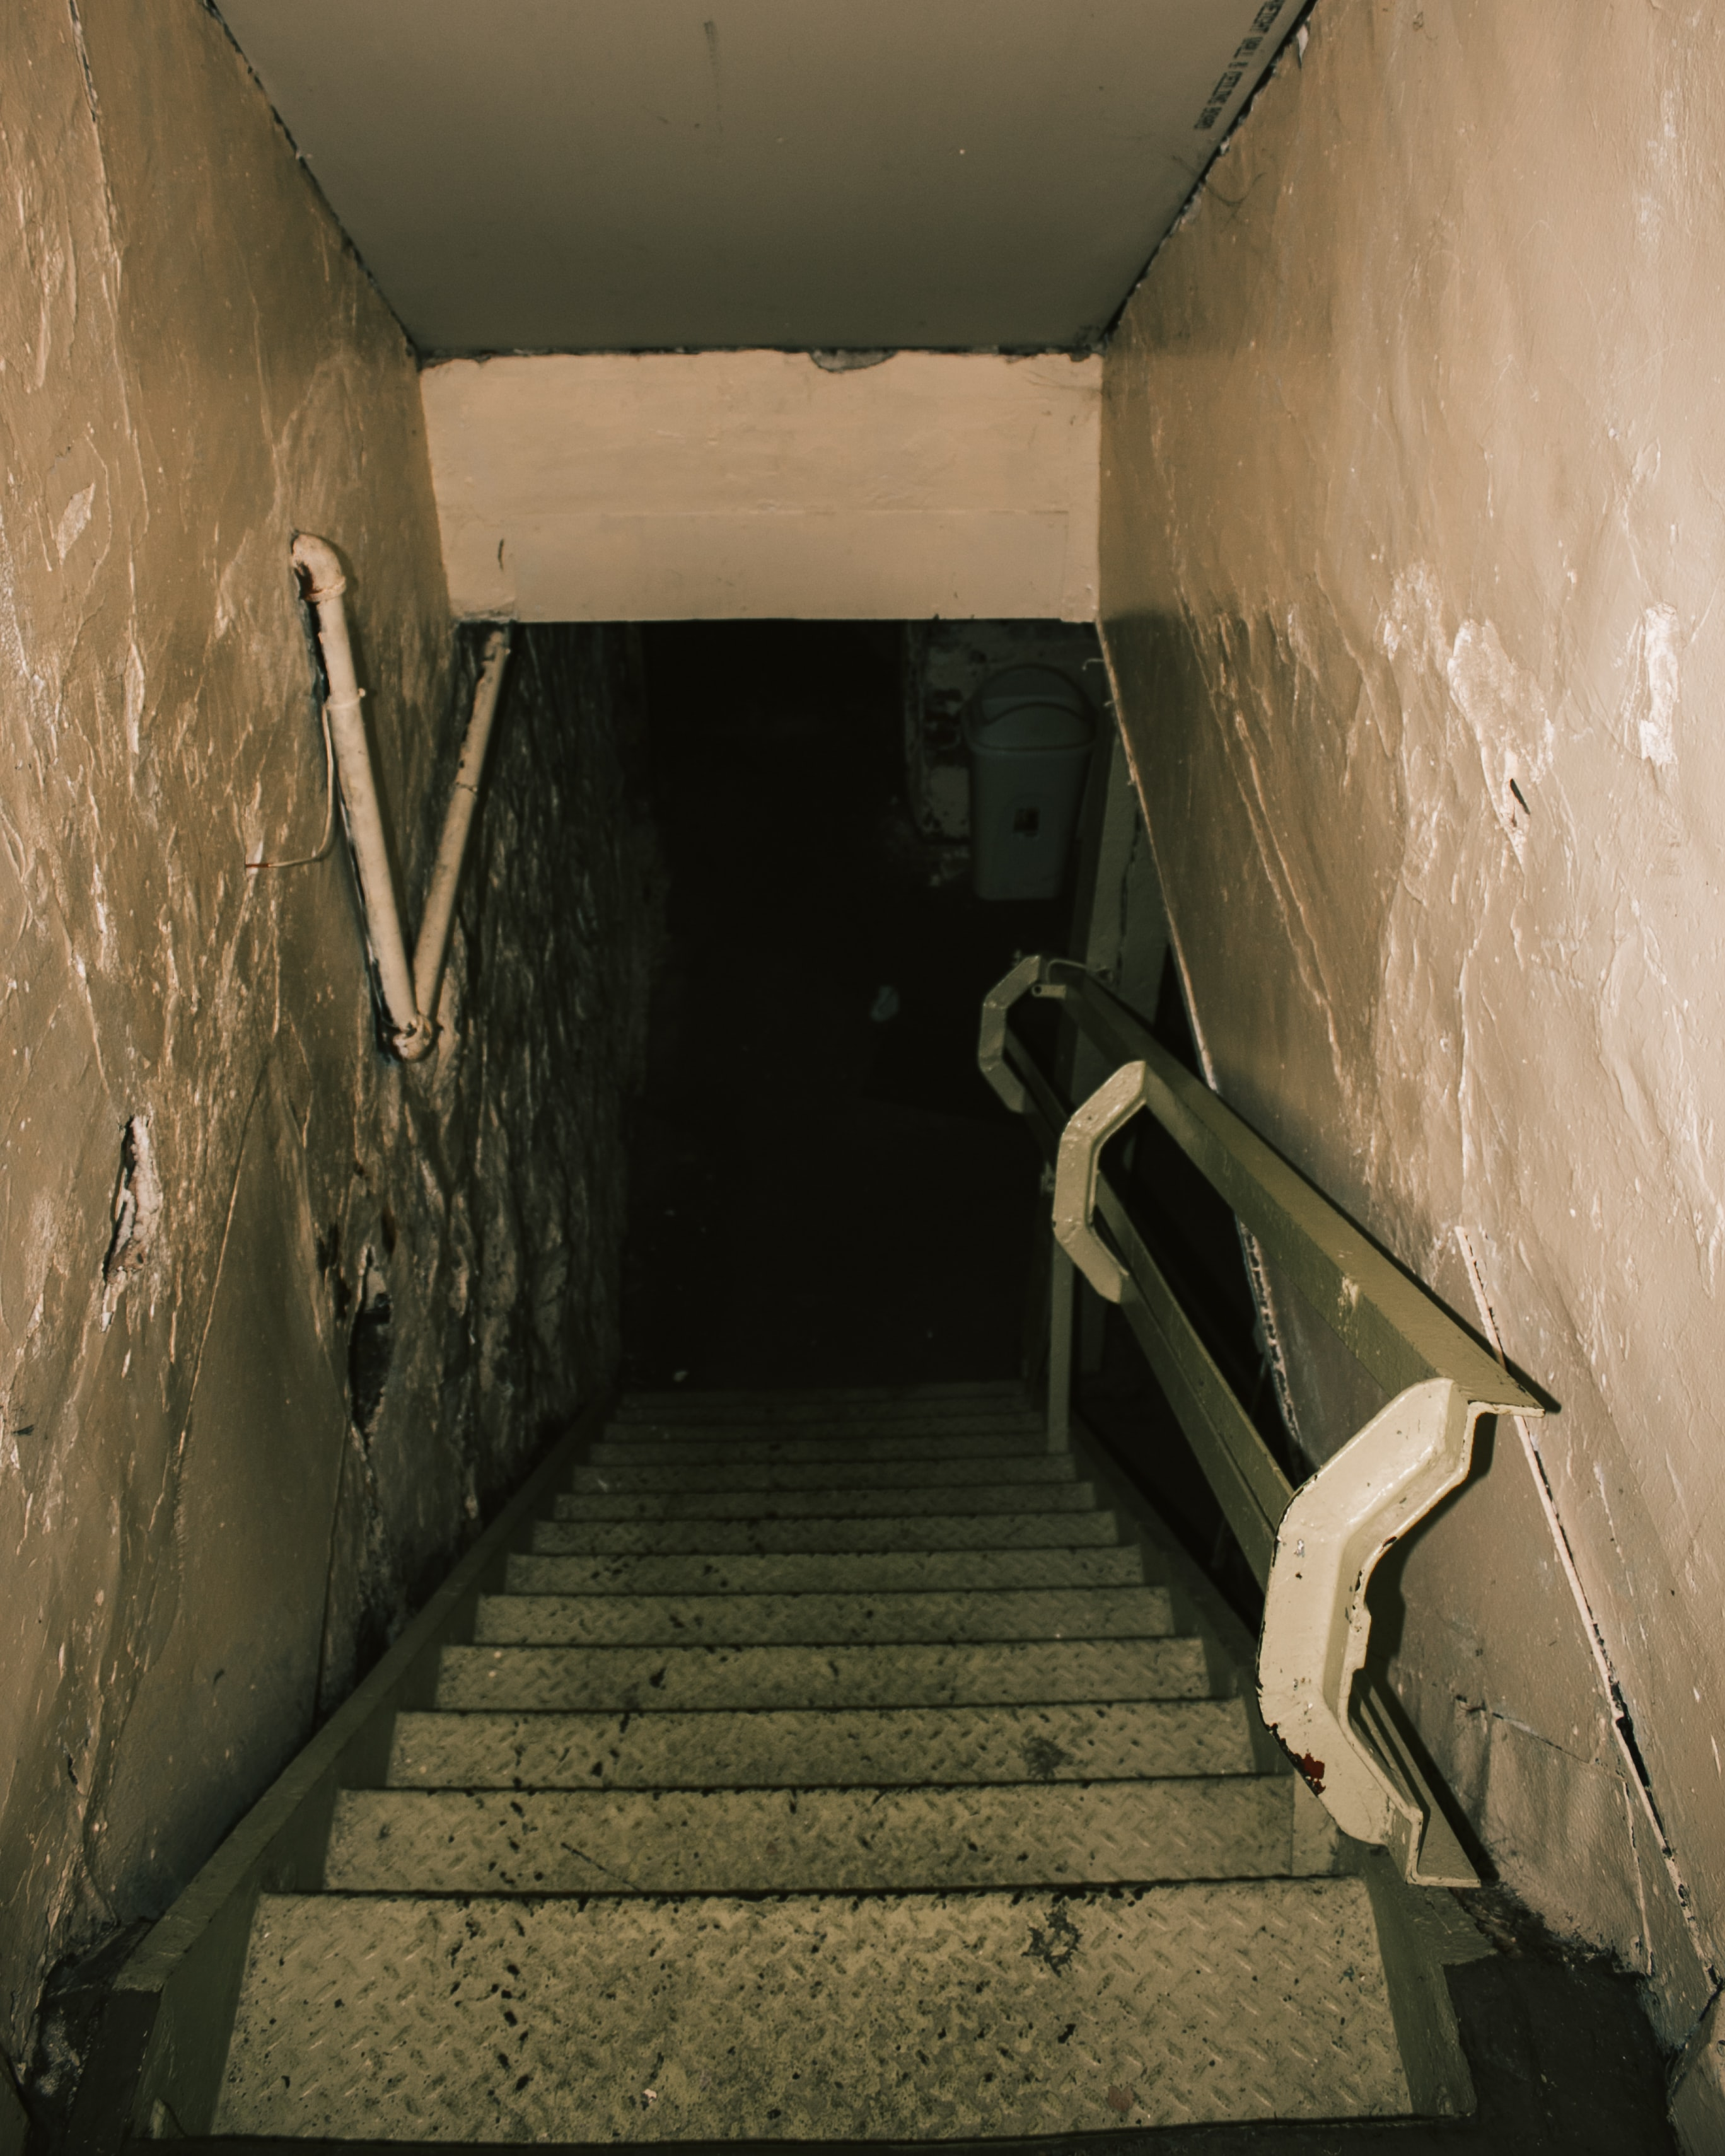 Picture of stairs leading down to a basement